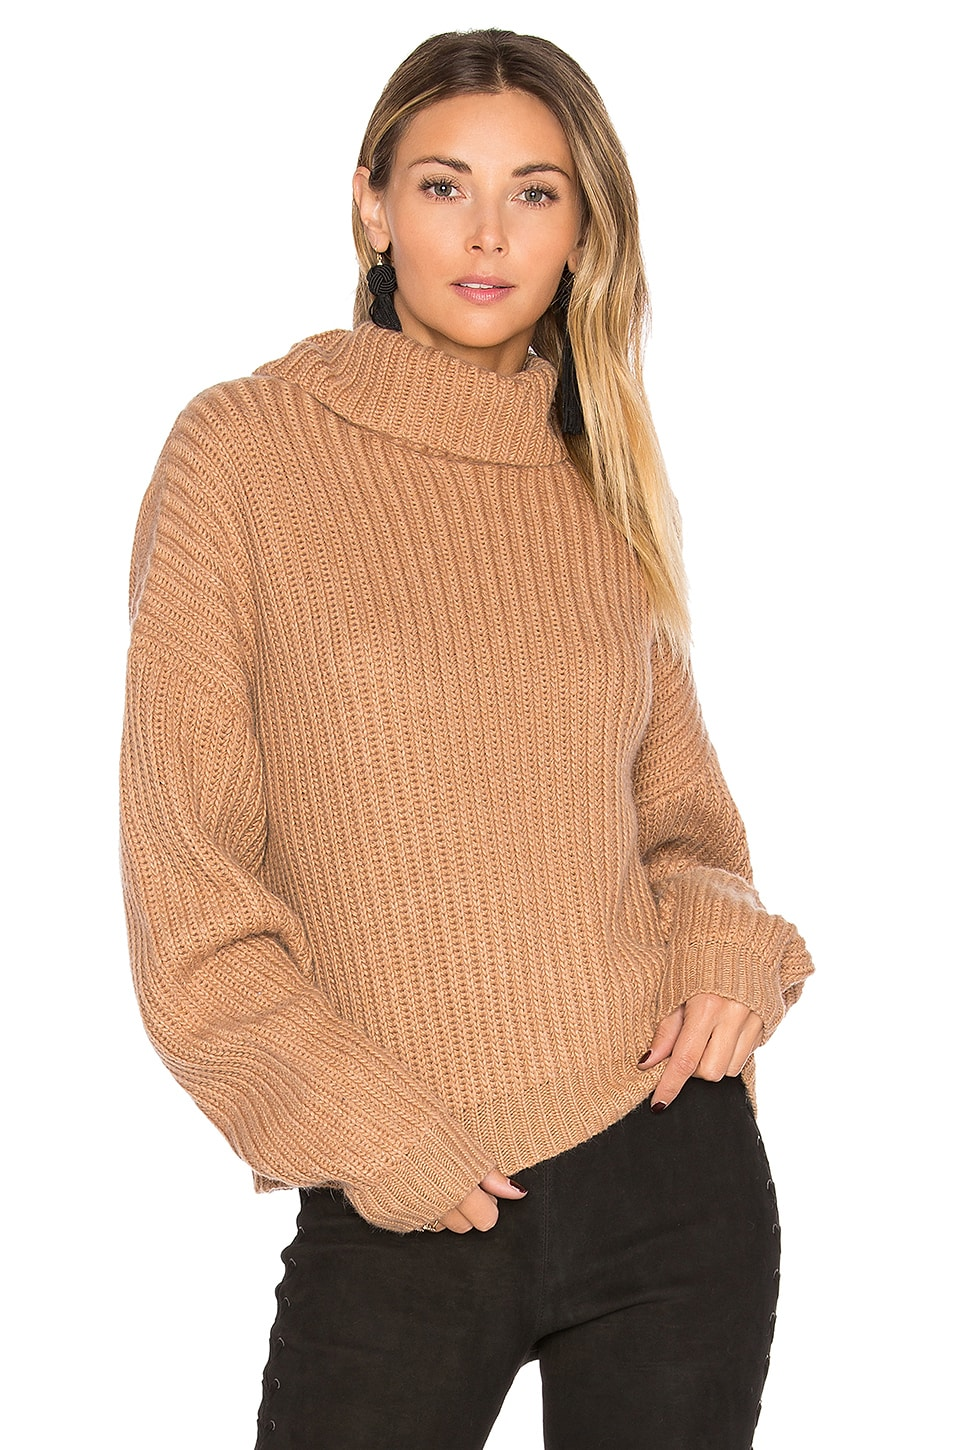 Lovers + Friends On The Road Sweater in Camel